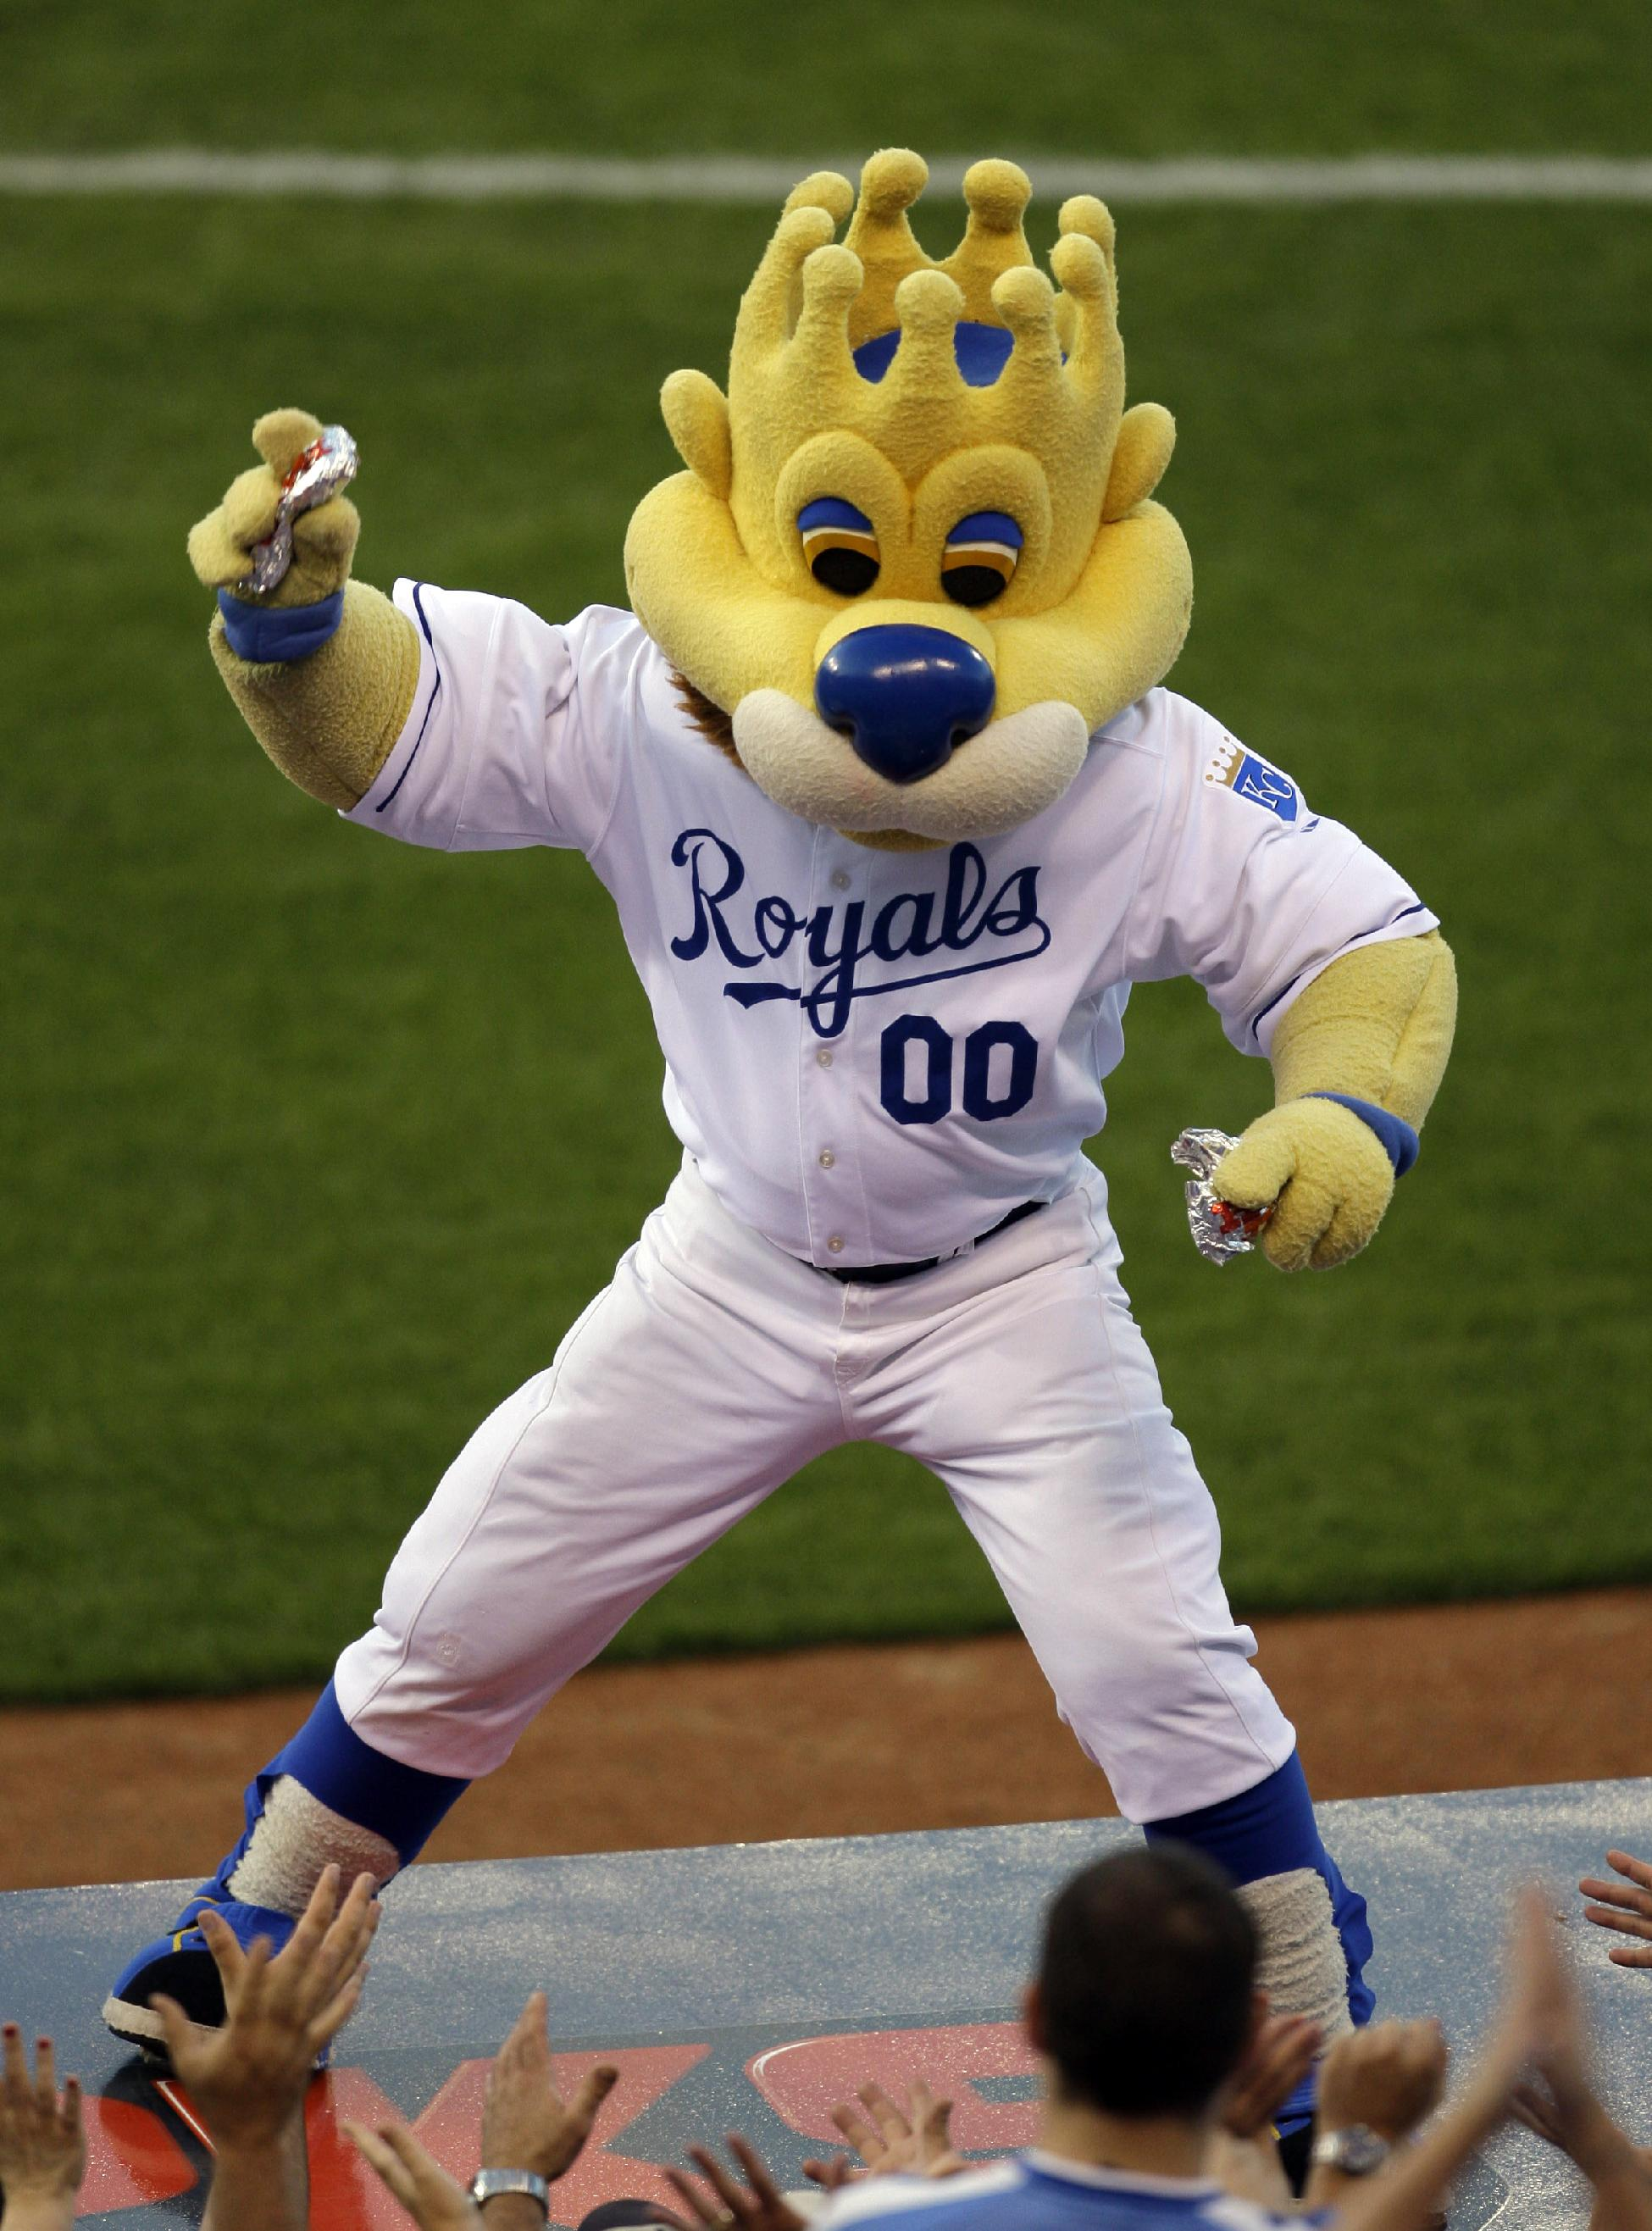 Fan injured by hot dog suing Kan. City Royals